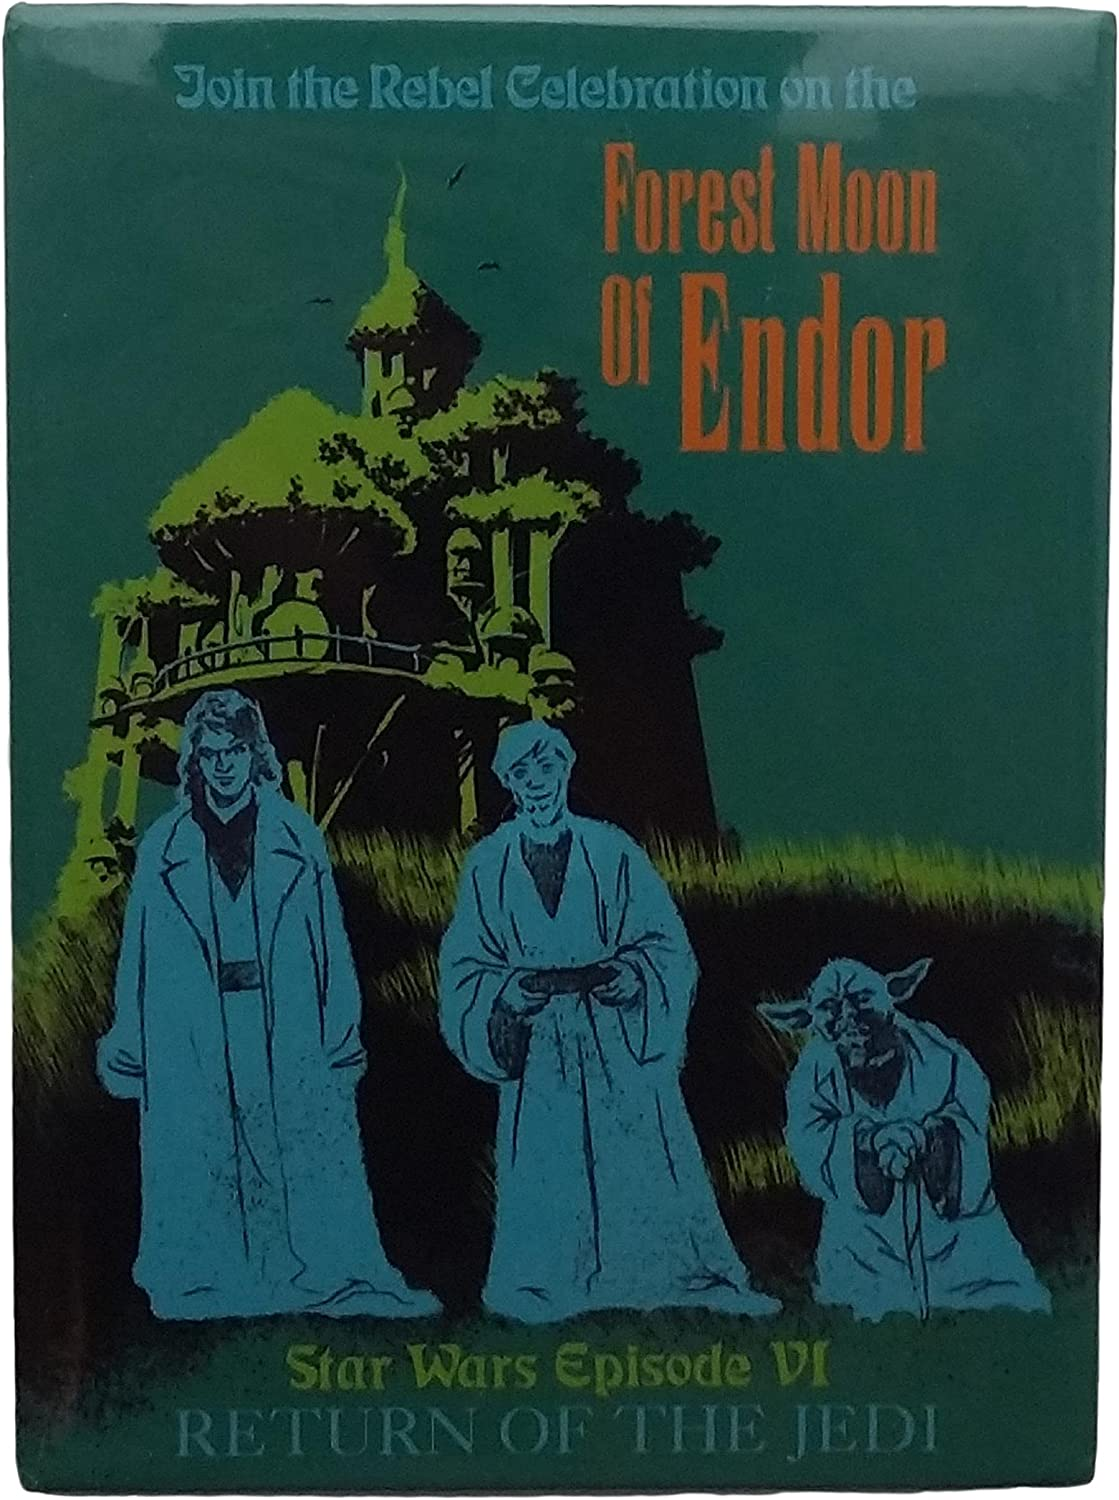 Vintage Haunted Mansion Disneyland Poster Available in 5 Sizes